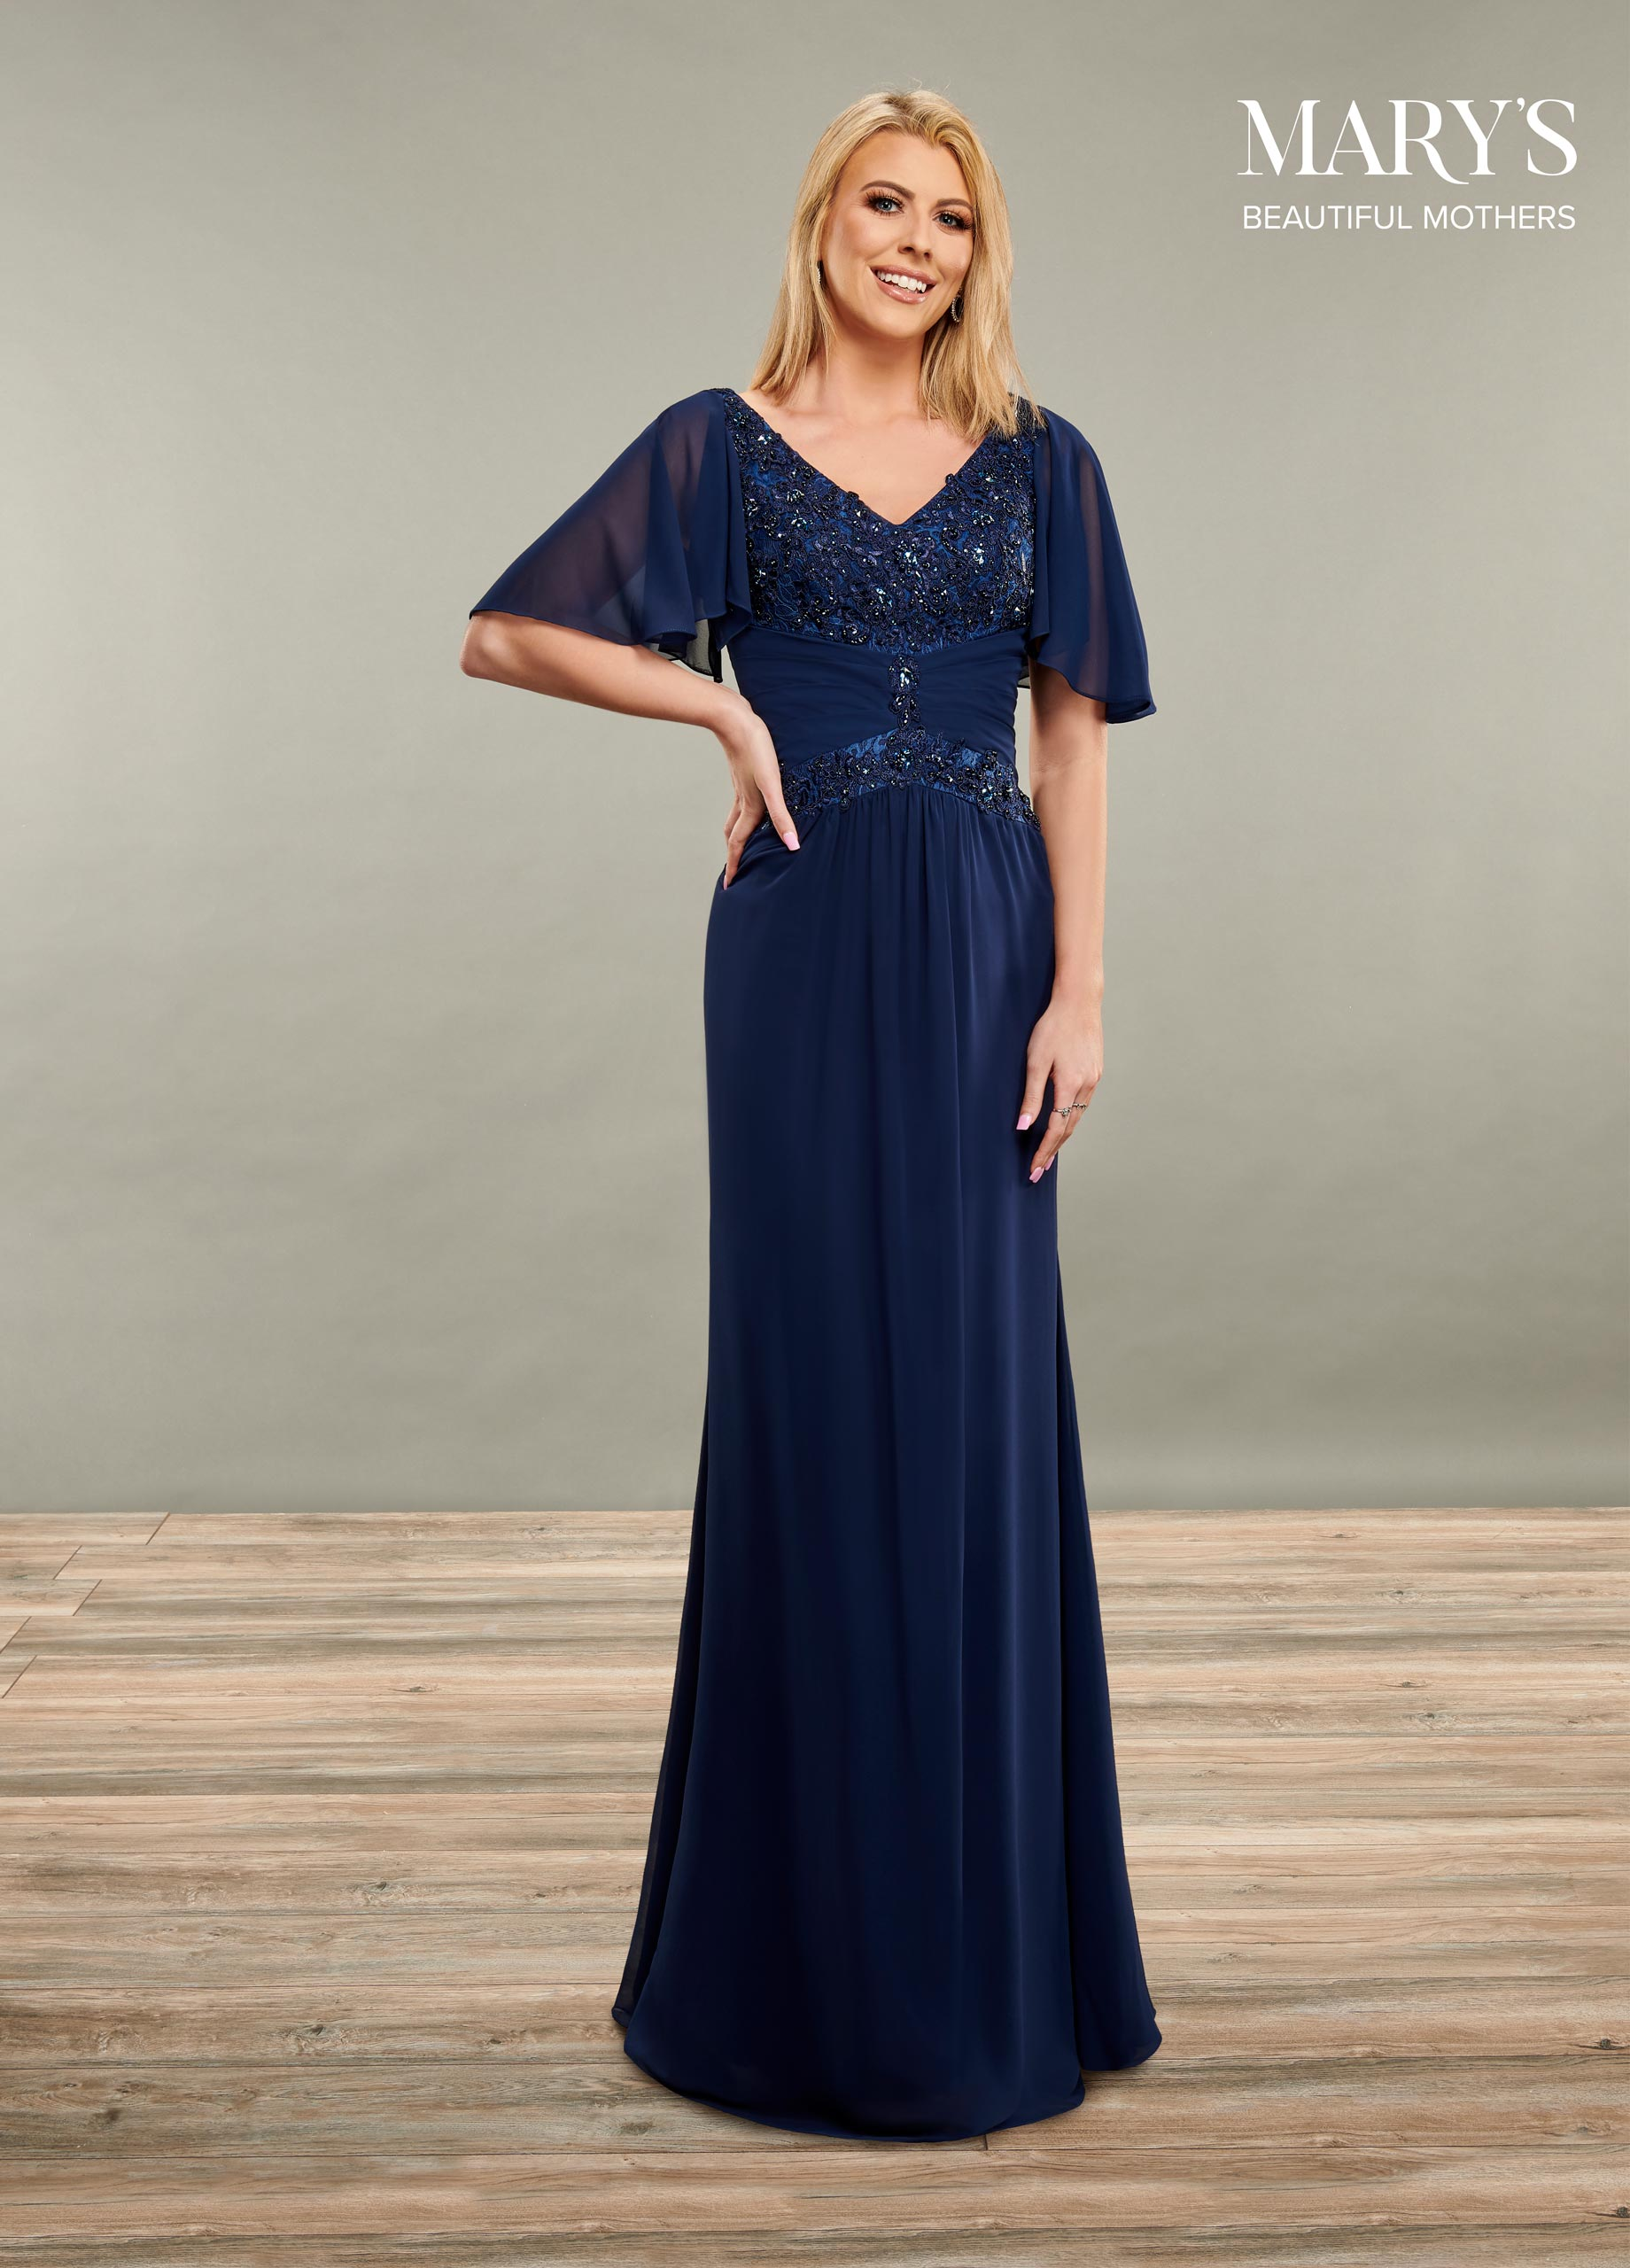 Mother Of The Bride Dresses | Beautiful Mothers | Style - MB8084